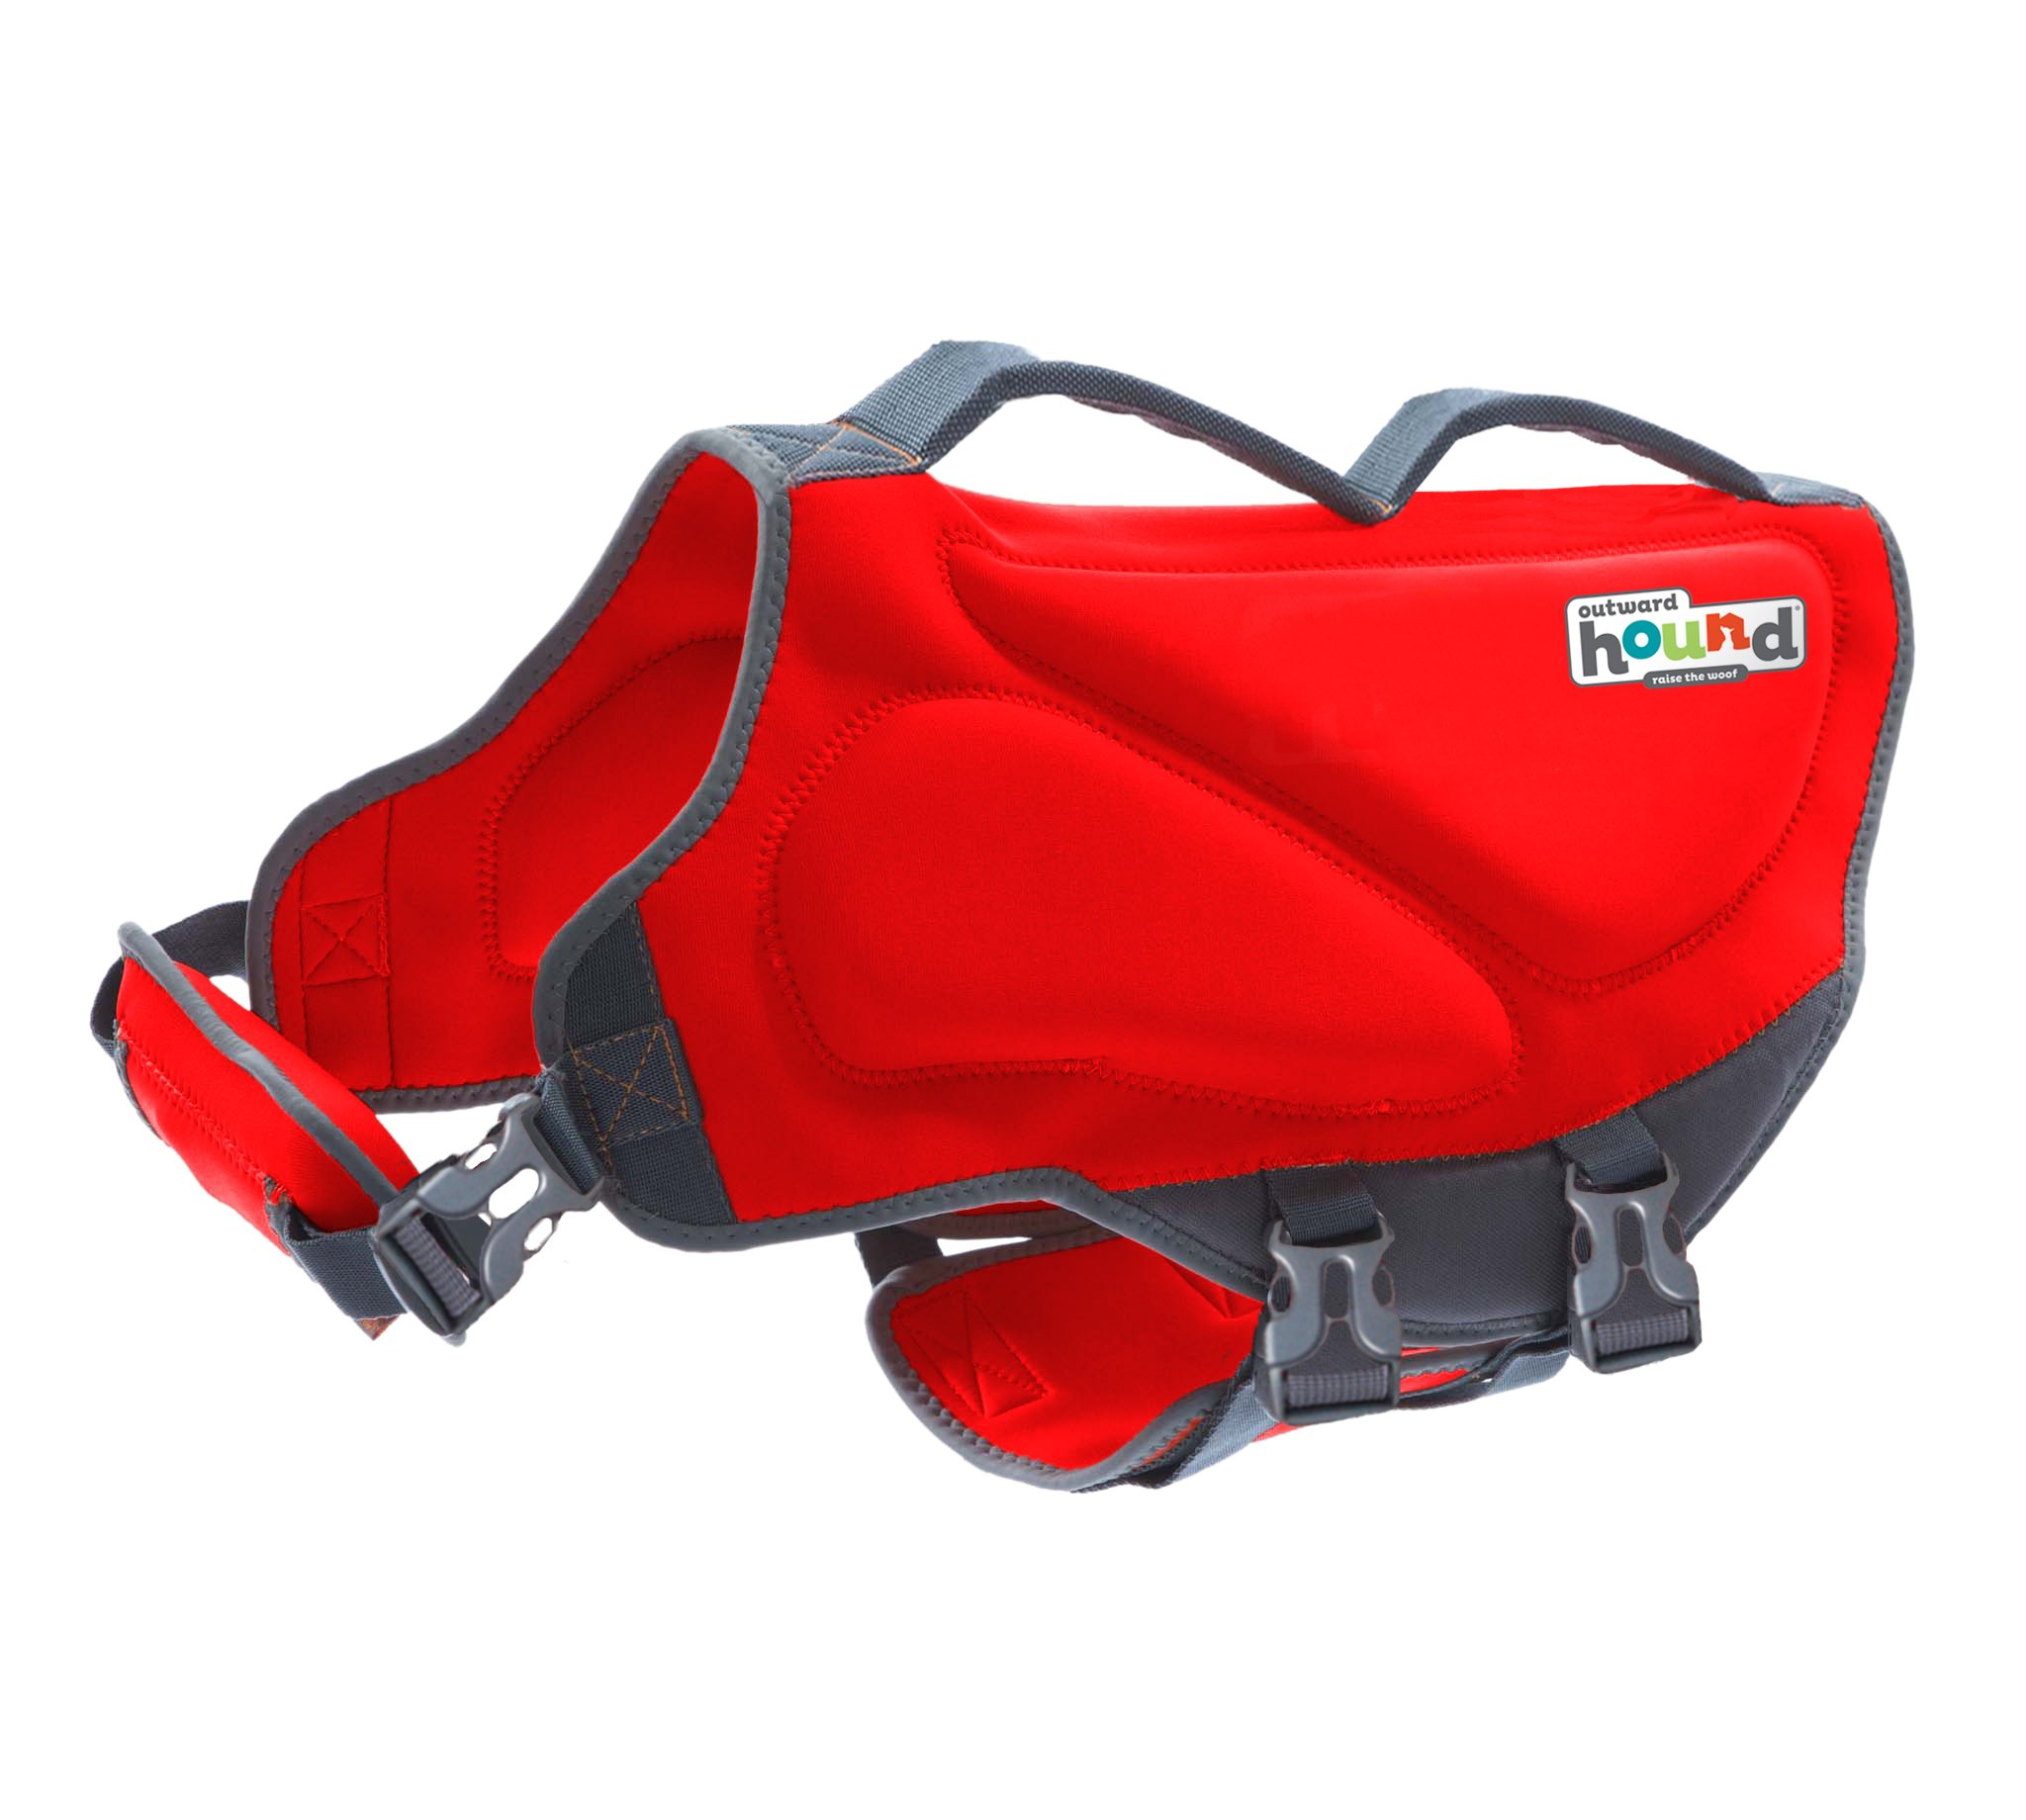 Outward Hound Dawson Swim Novice Swimmer Life Jacket for Dogs Red LARGE